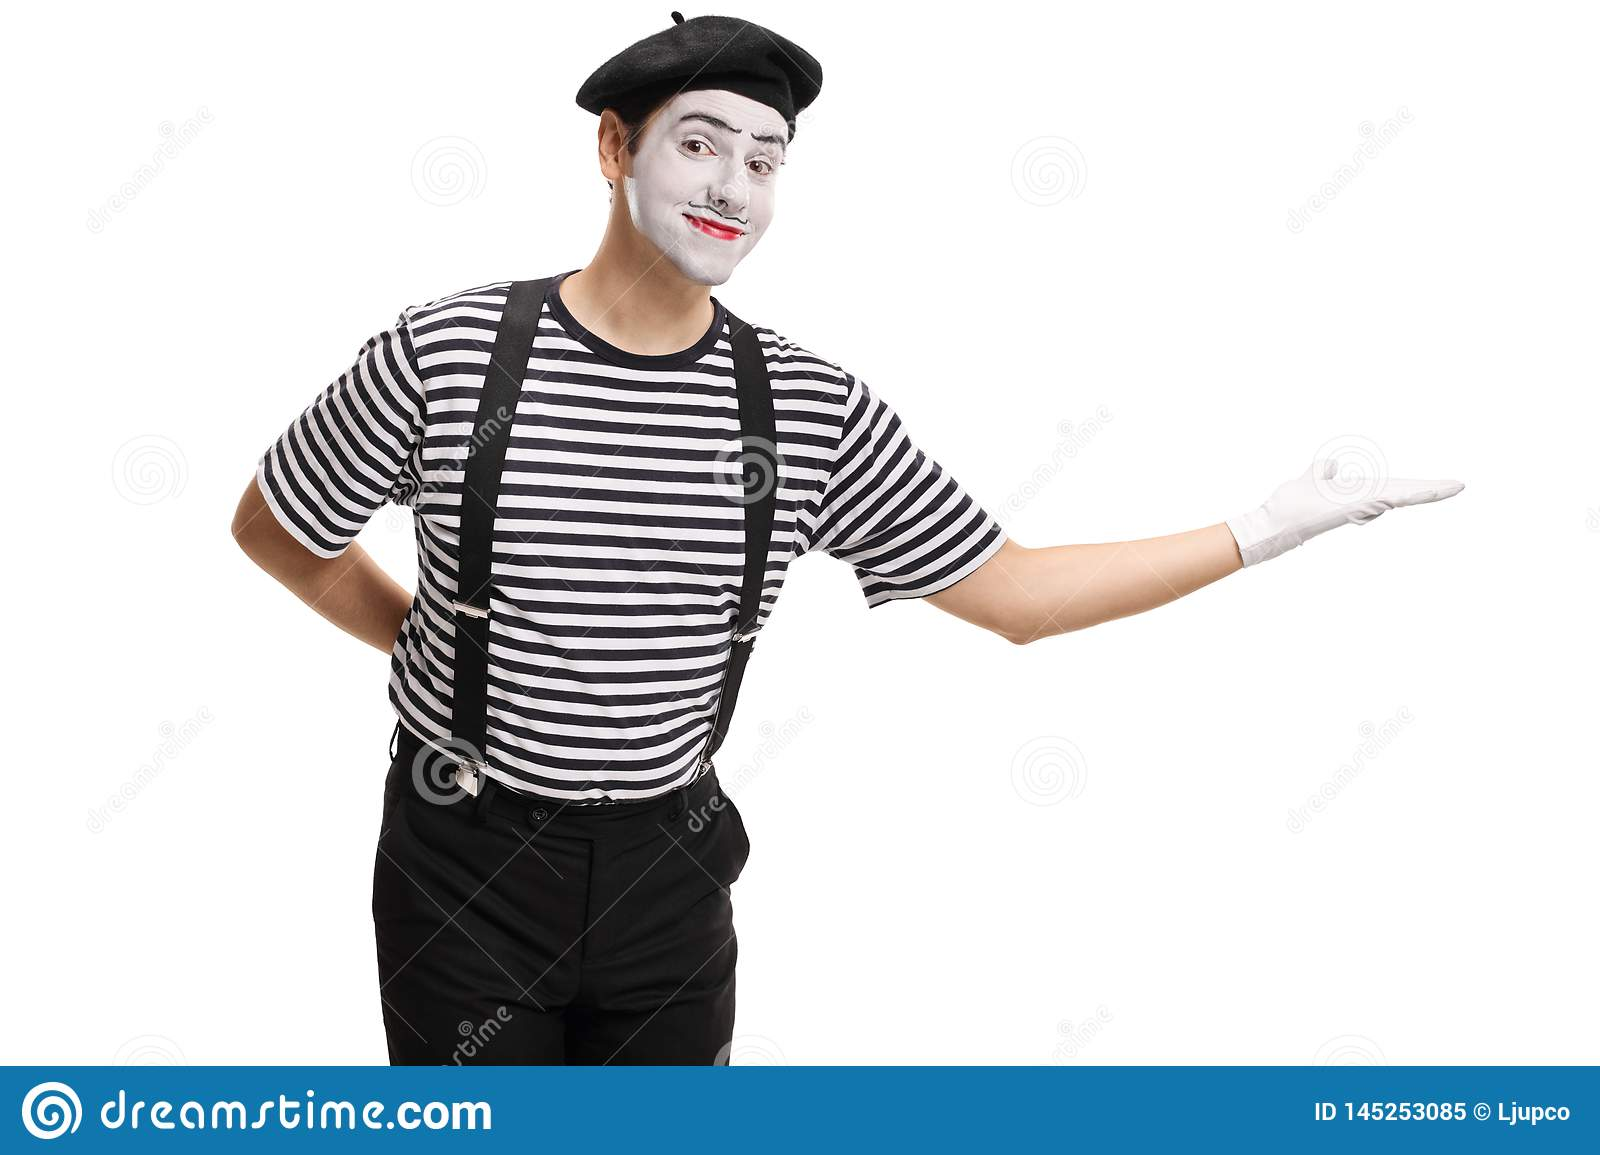 Mime gesturing welcome with his hand